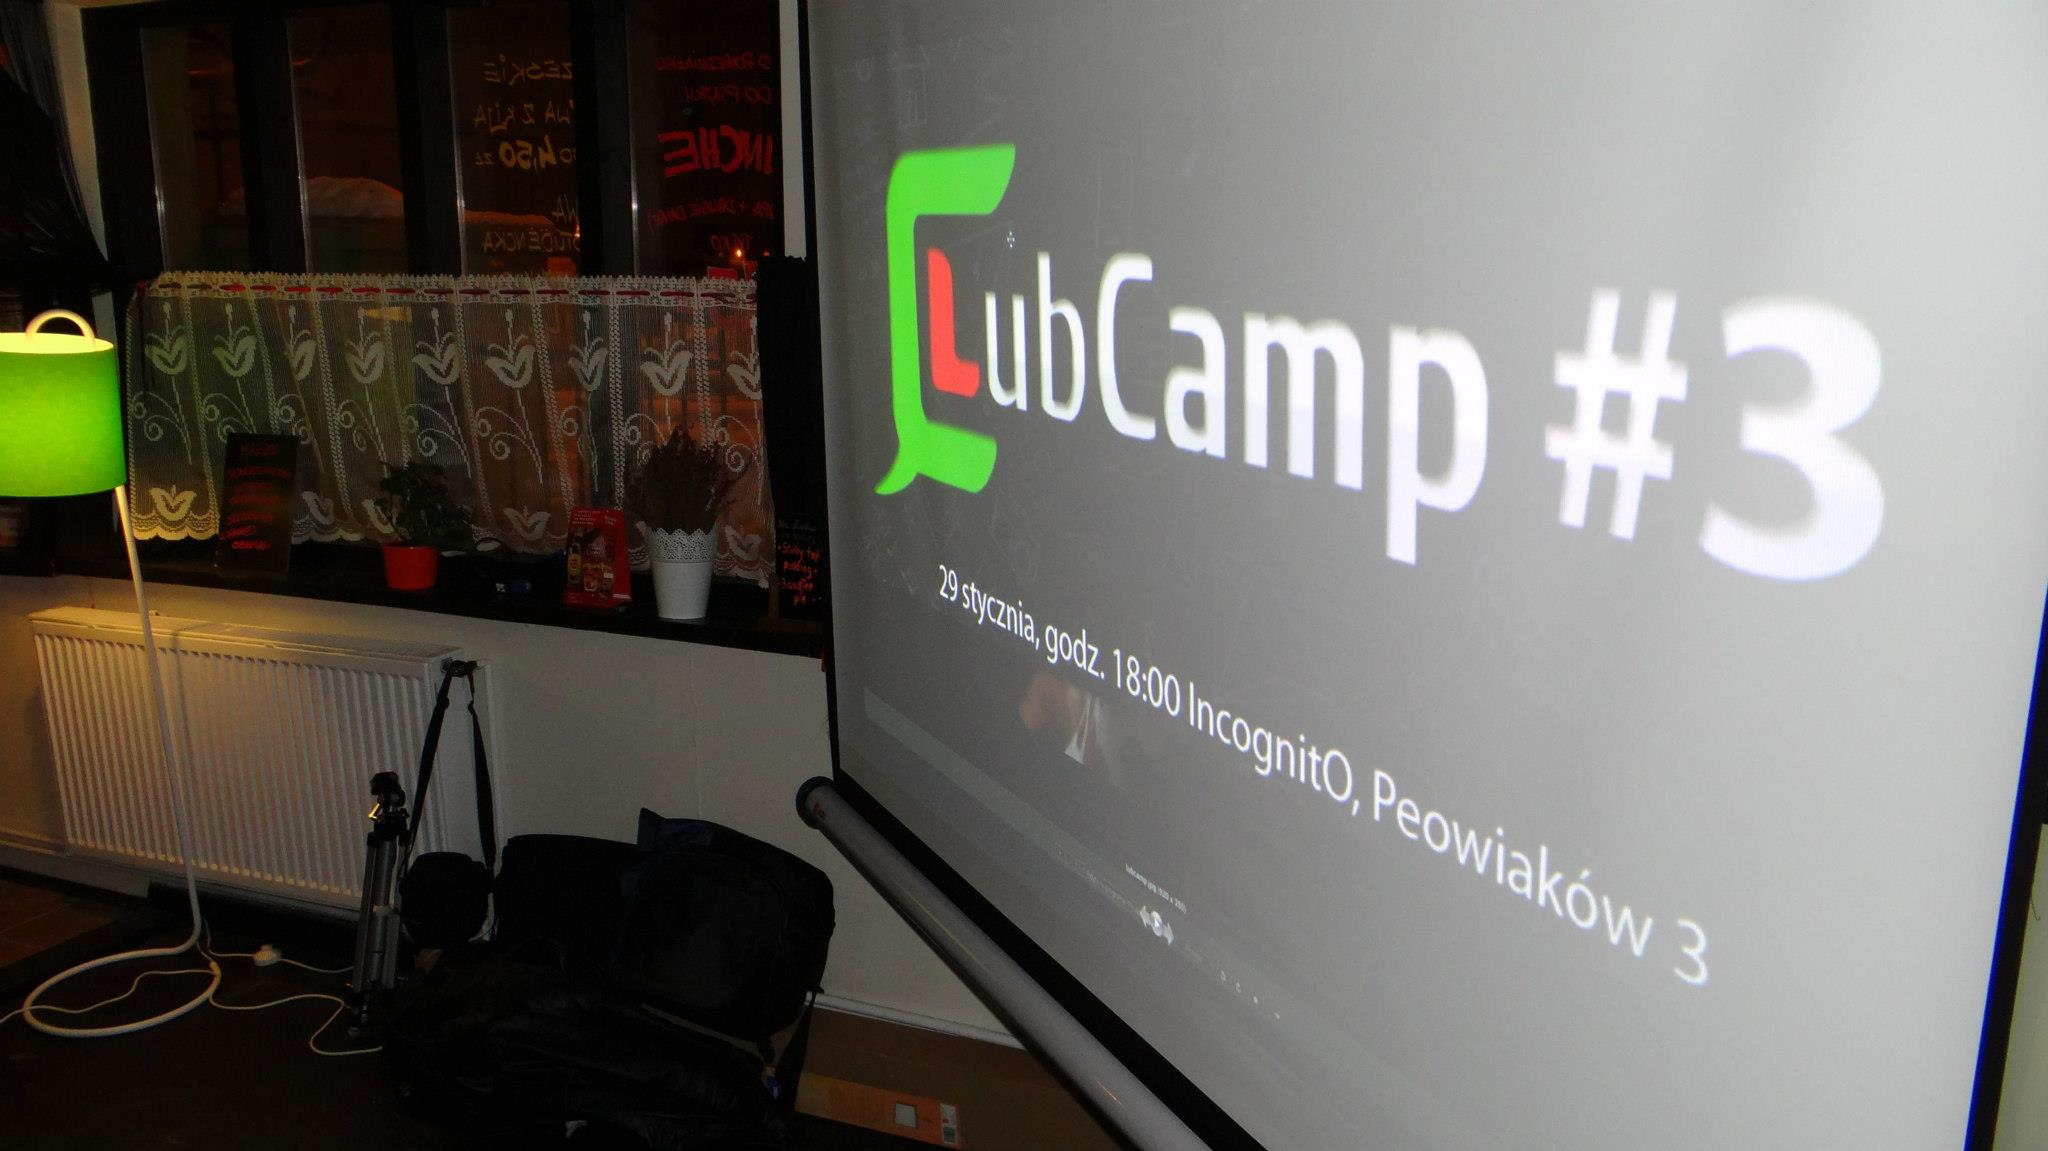 (LubCamp)